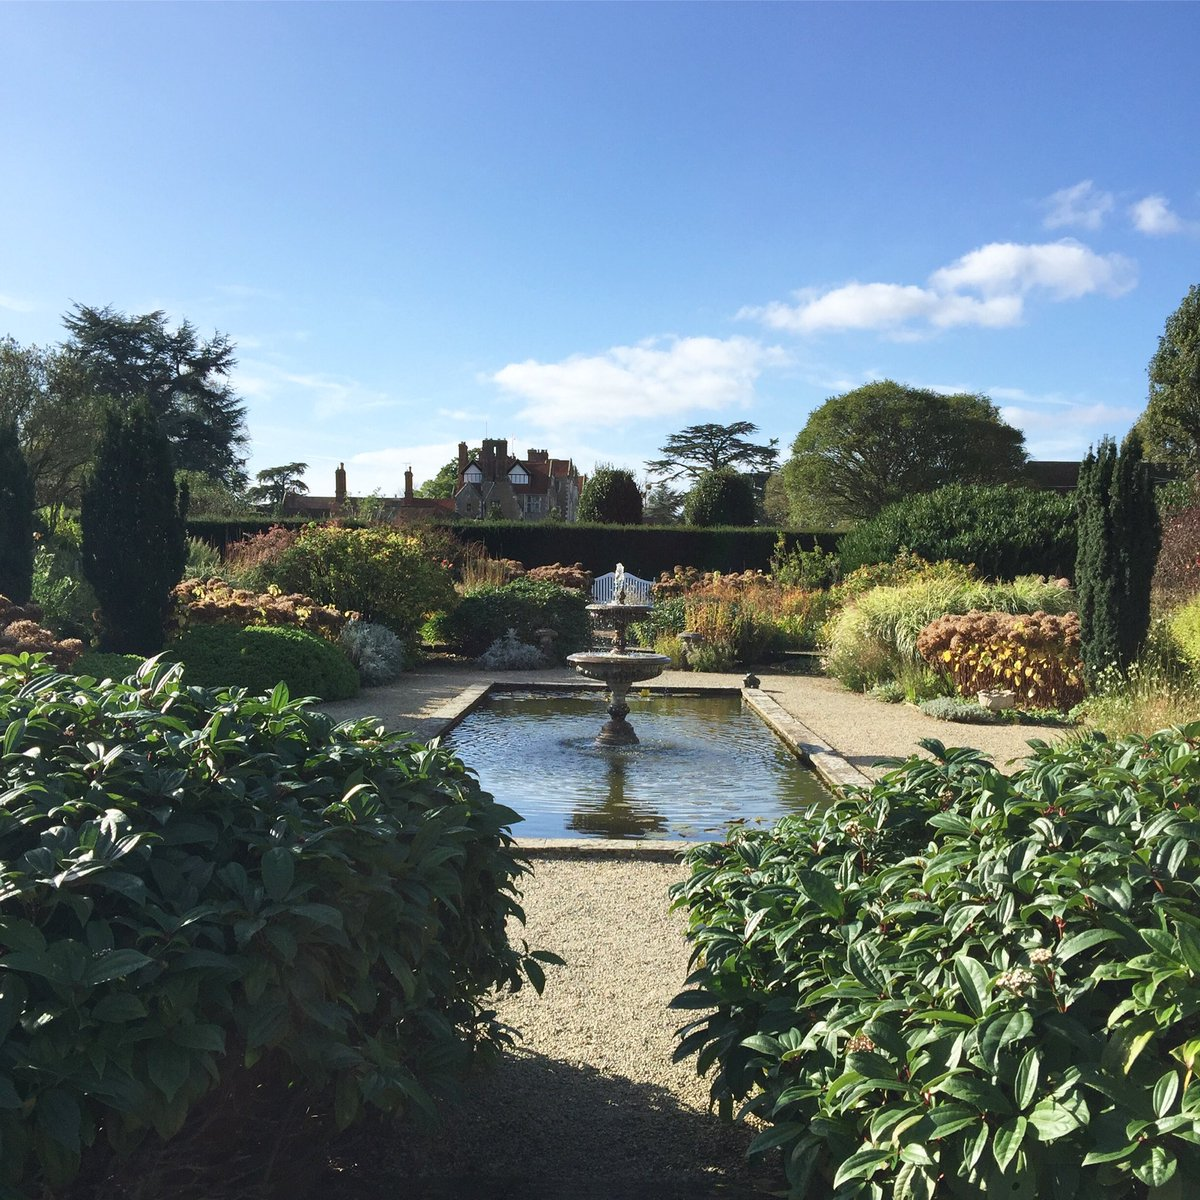 Glorious view in the #walled #garden today